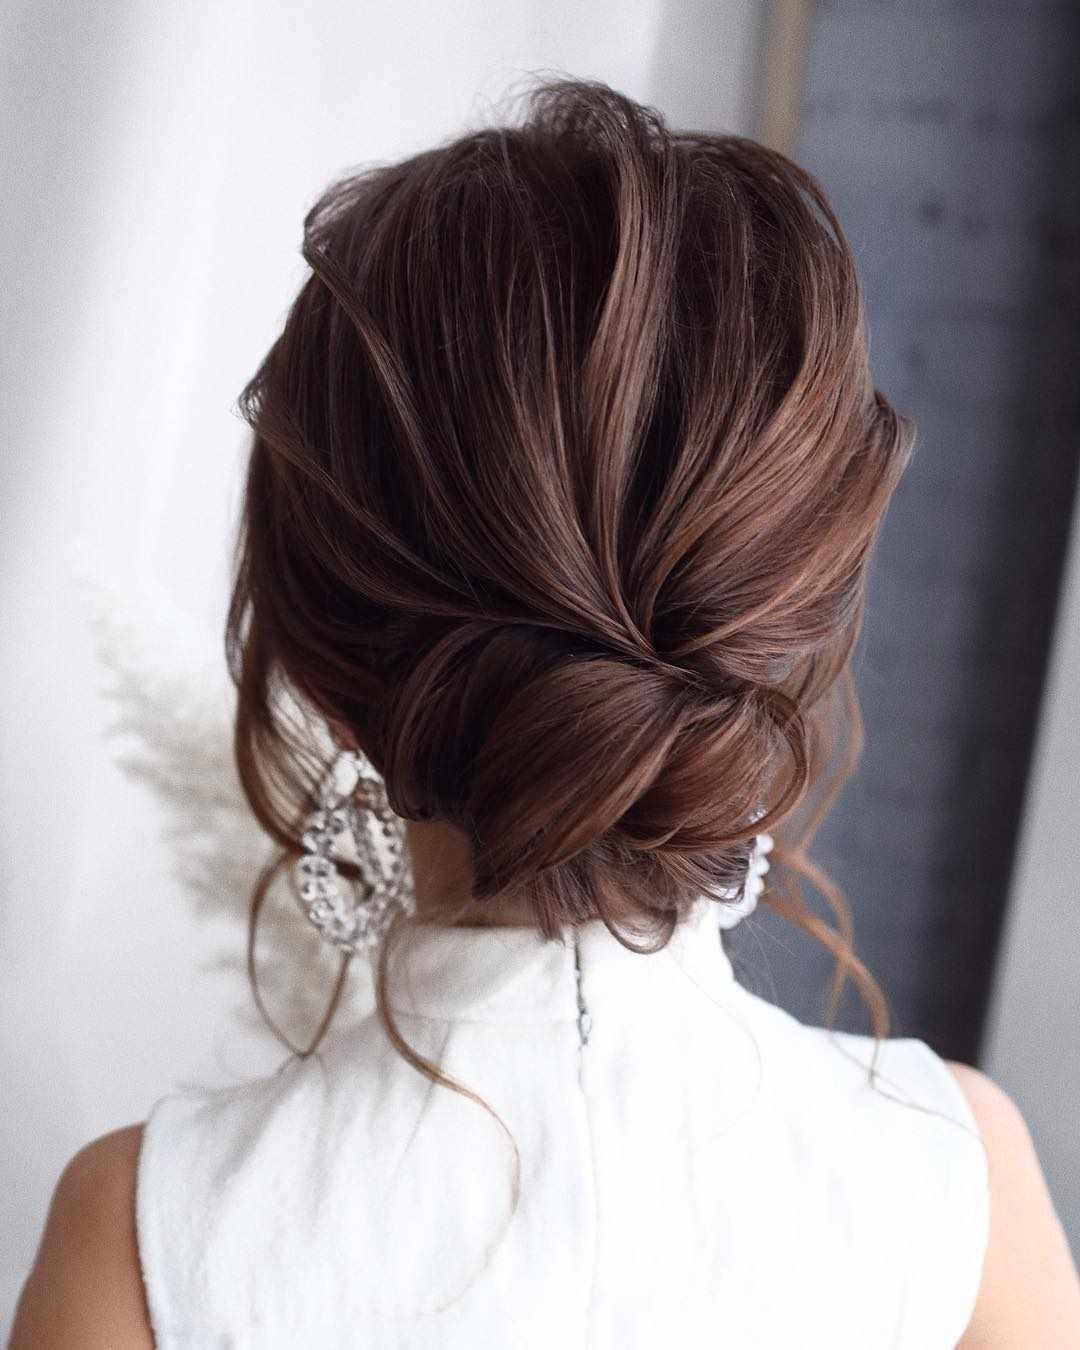 Prom Hairstyles For Long Hair - #modernhairs explore Pinterest